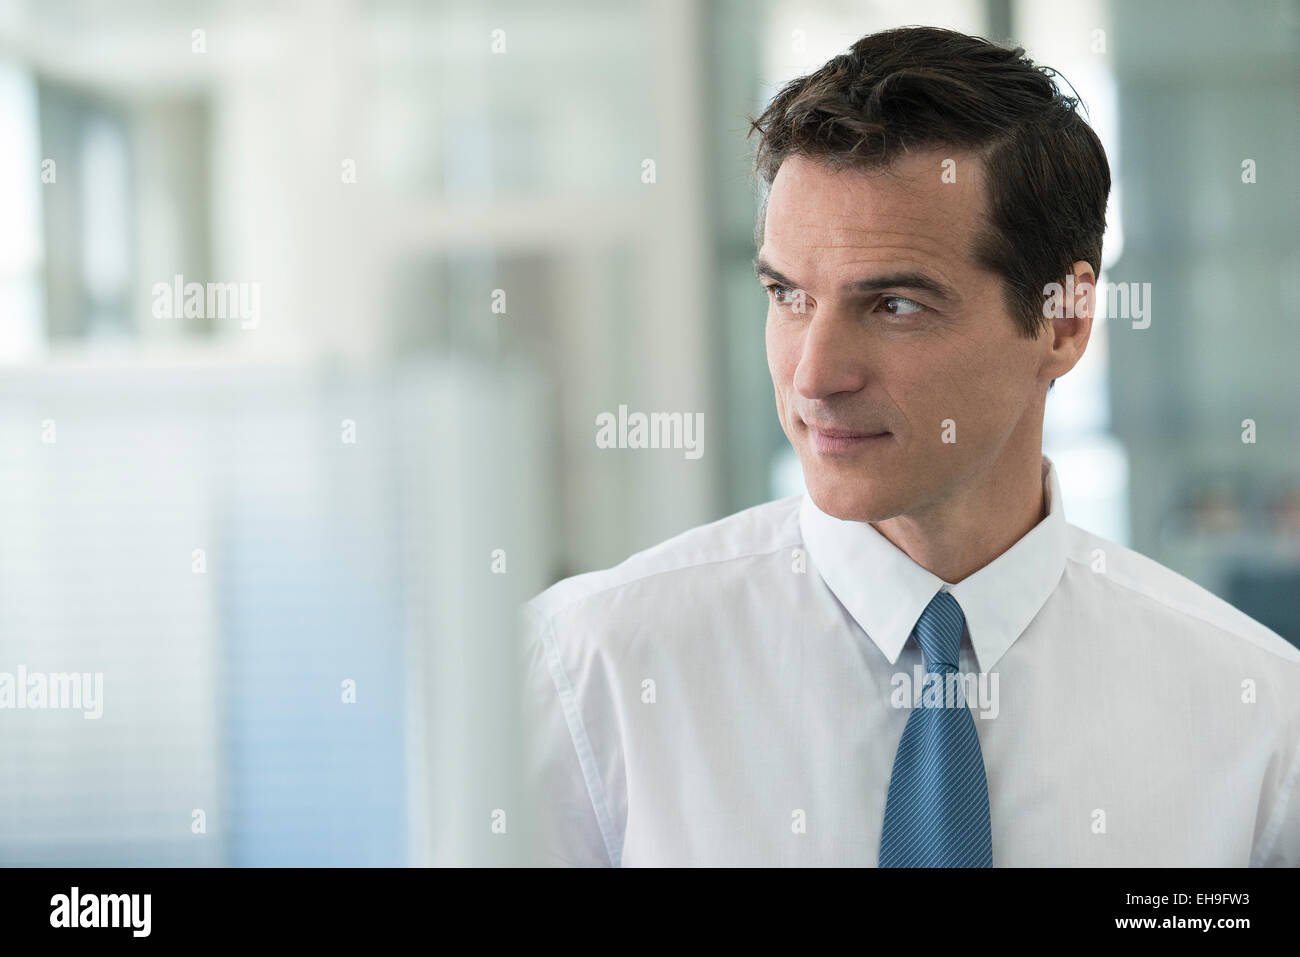 Businessman looking away in thought, portrait - Stock Image